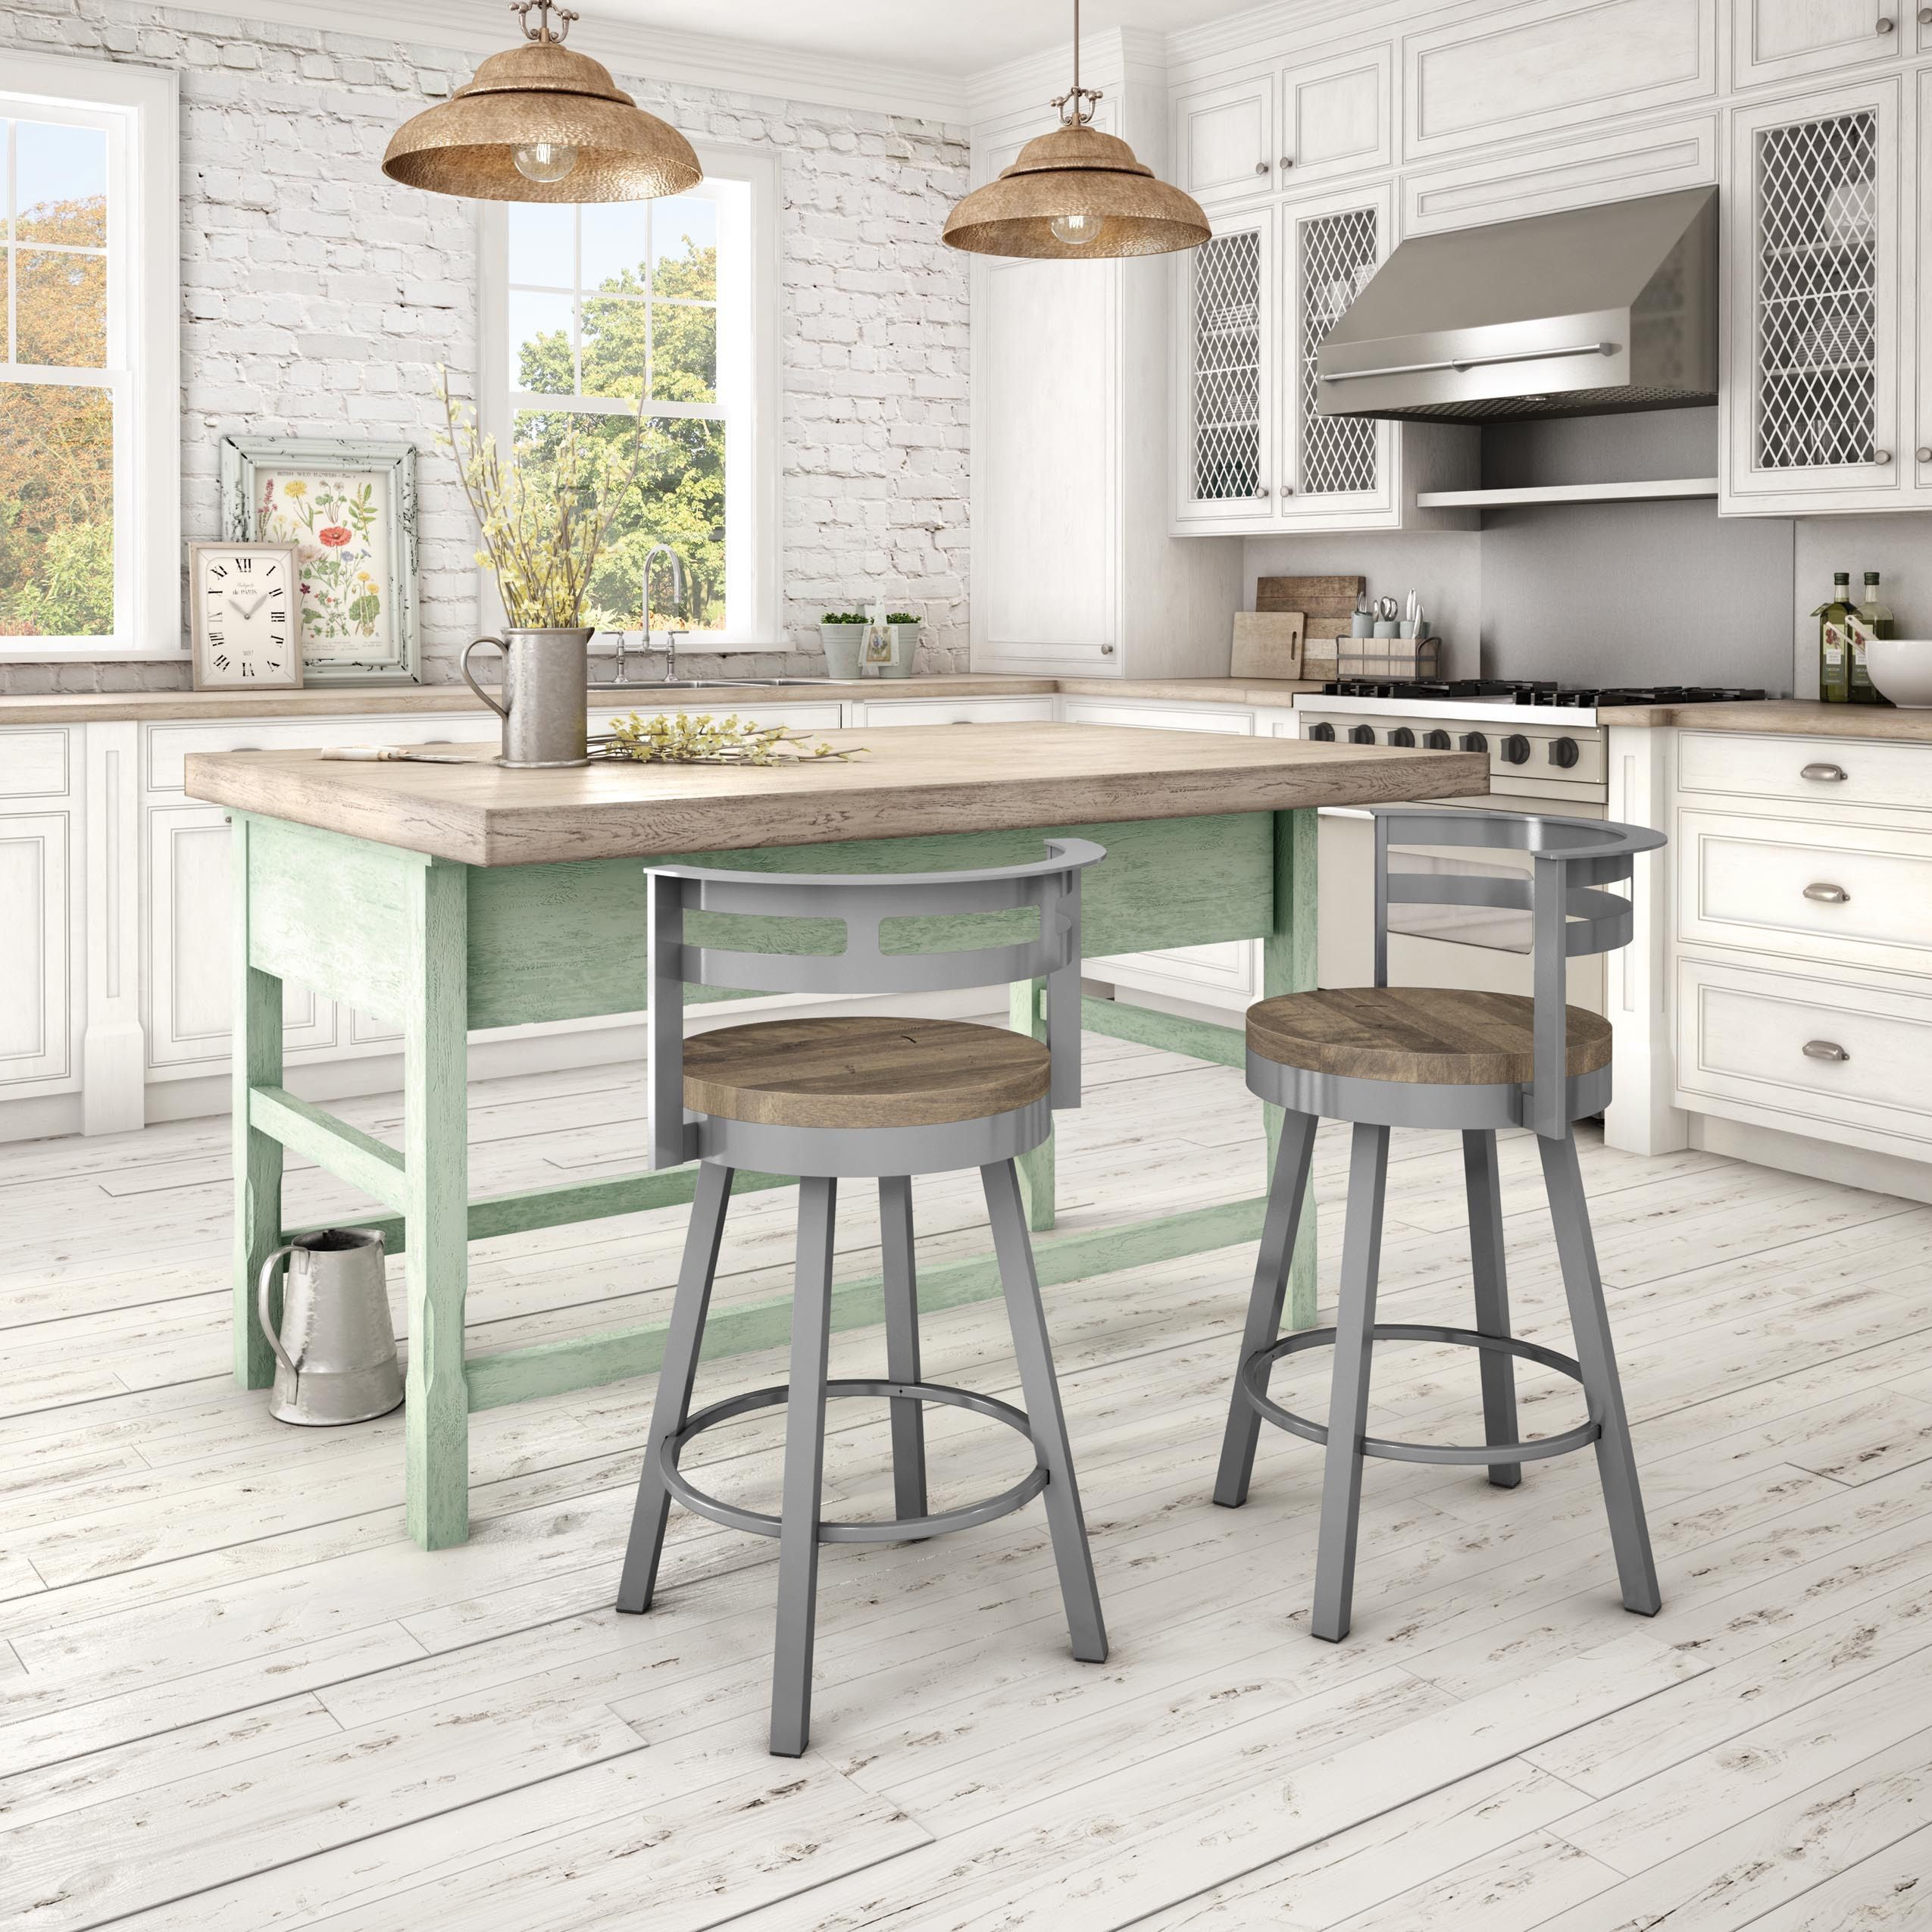 Inspirational Bar Stool Height for Kitchen island